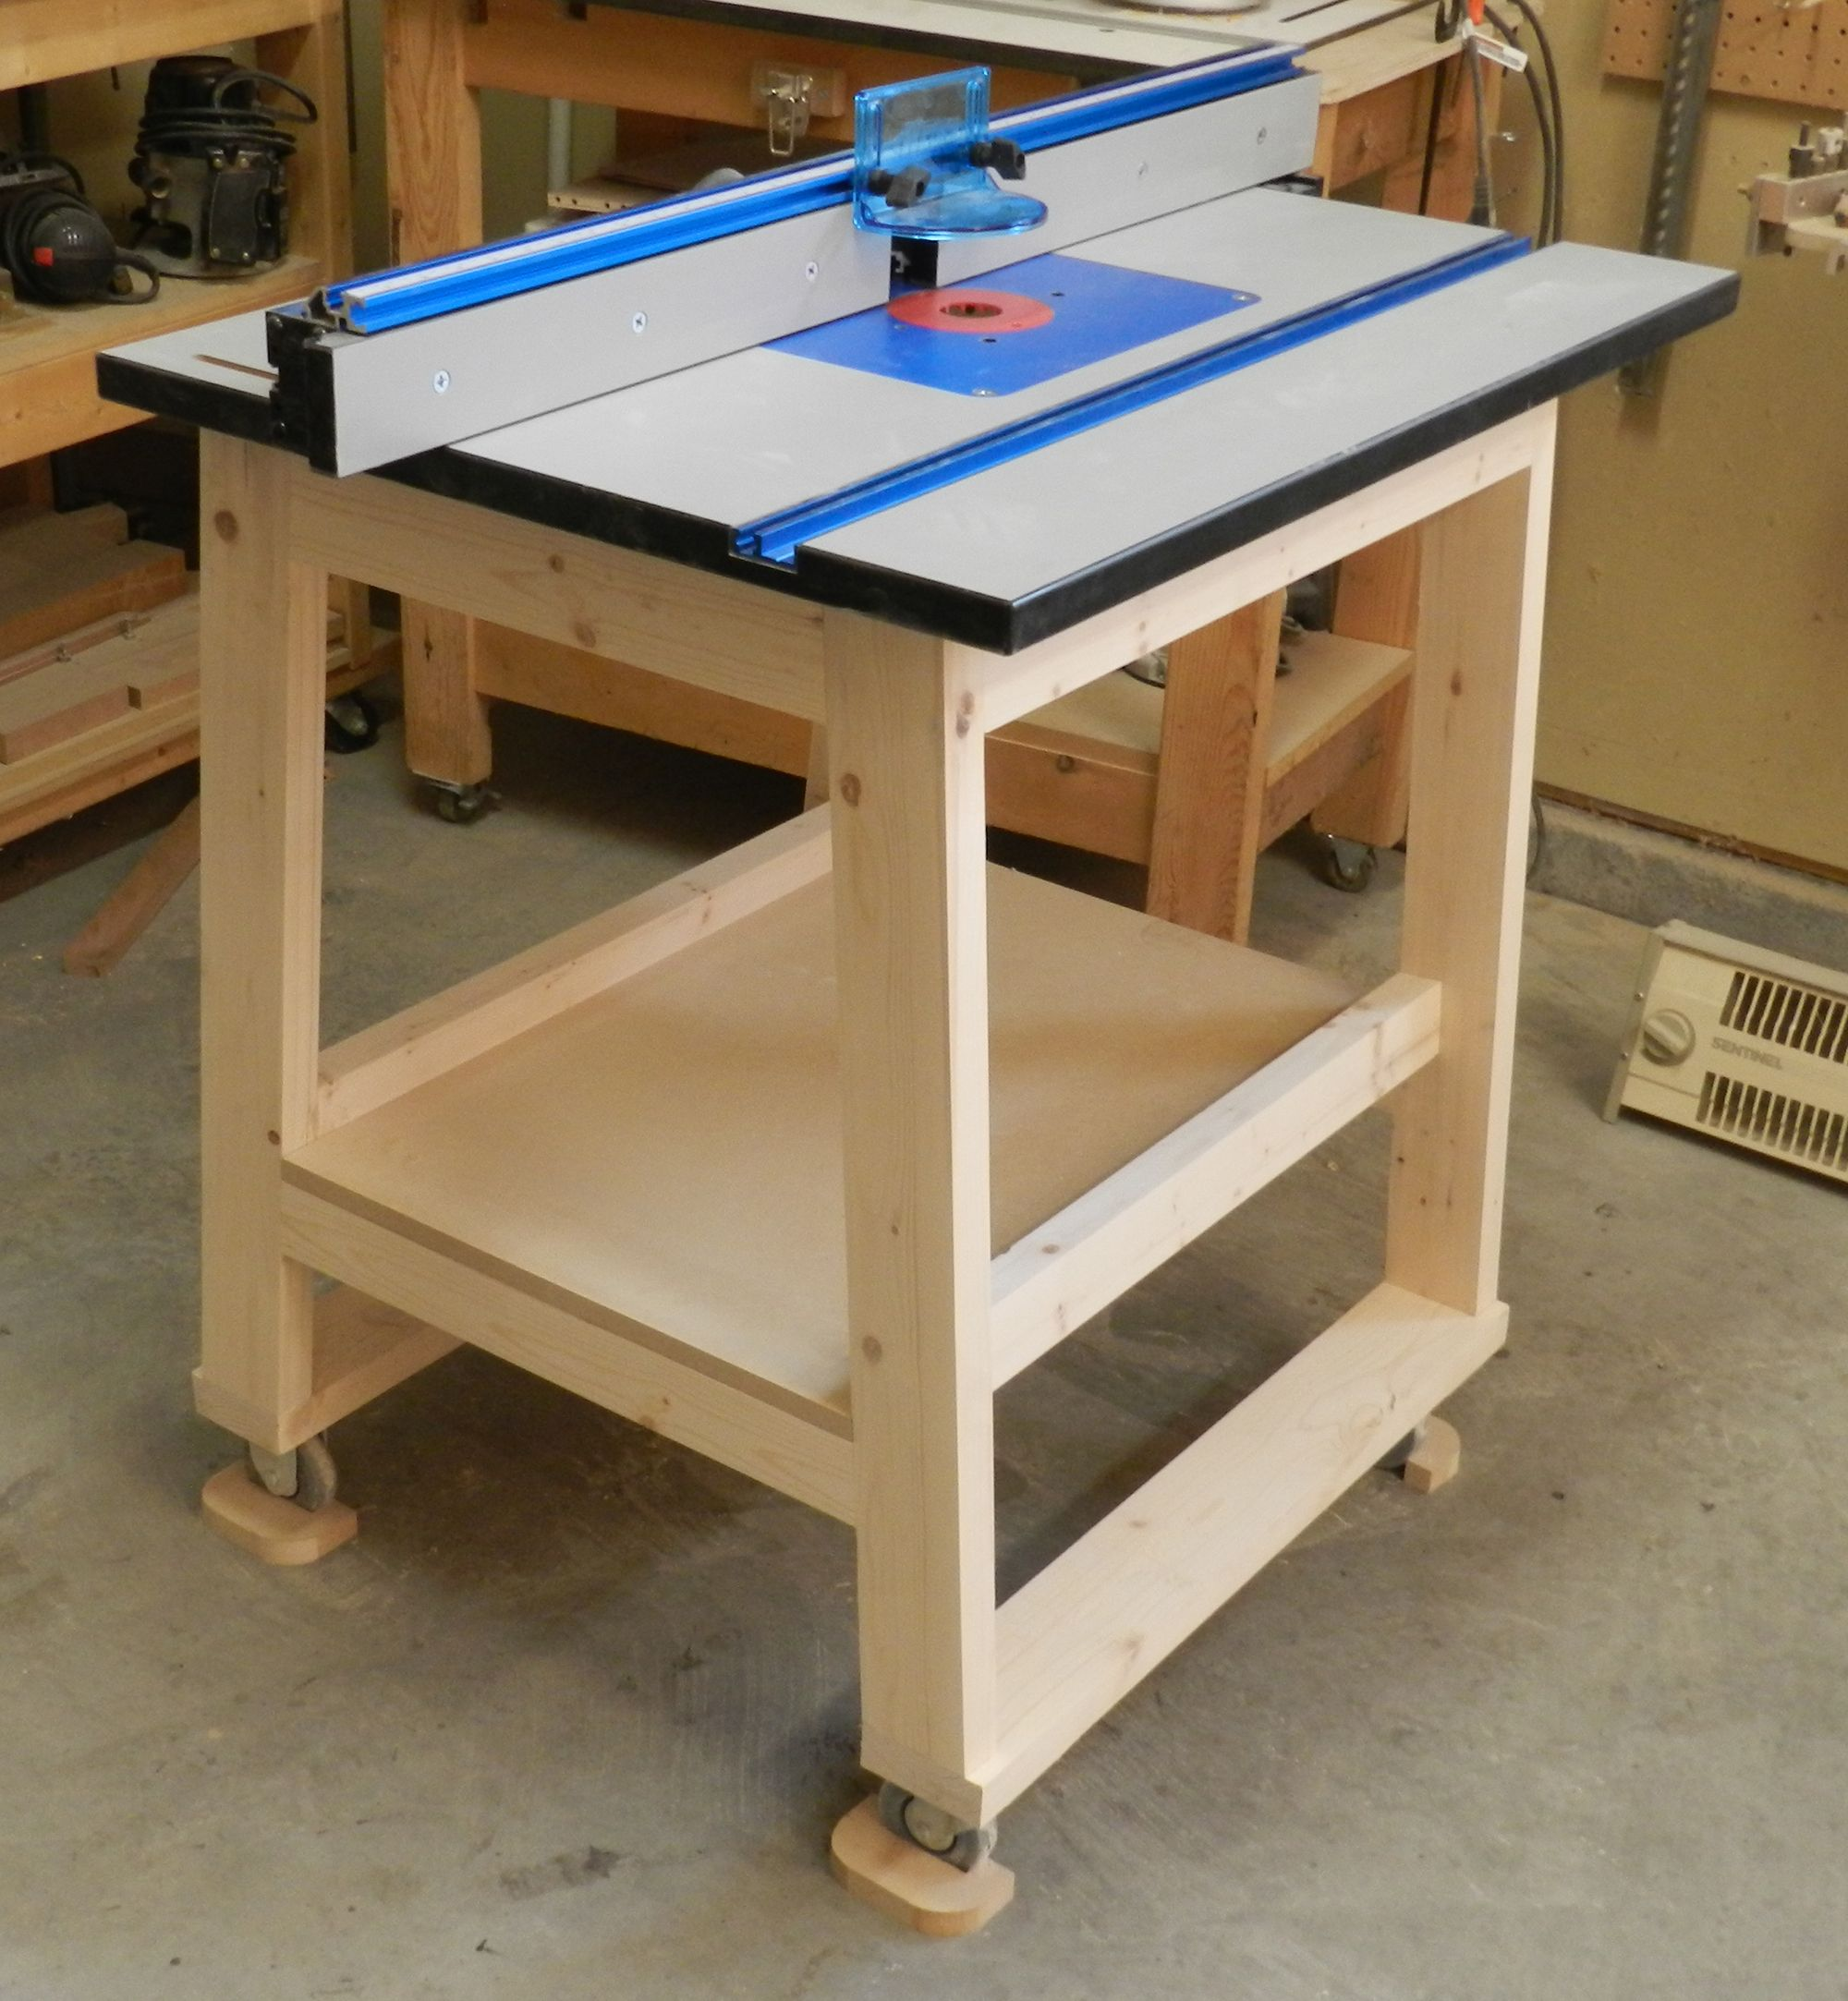 Wooden kreg router table plans diy blueprints kreg router table wooden kreg router table plans diy blueprints kreg router table plans 2 in 1 outdoor games greentooth